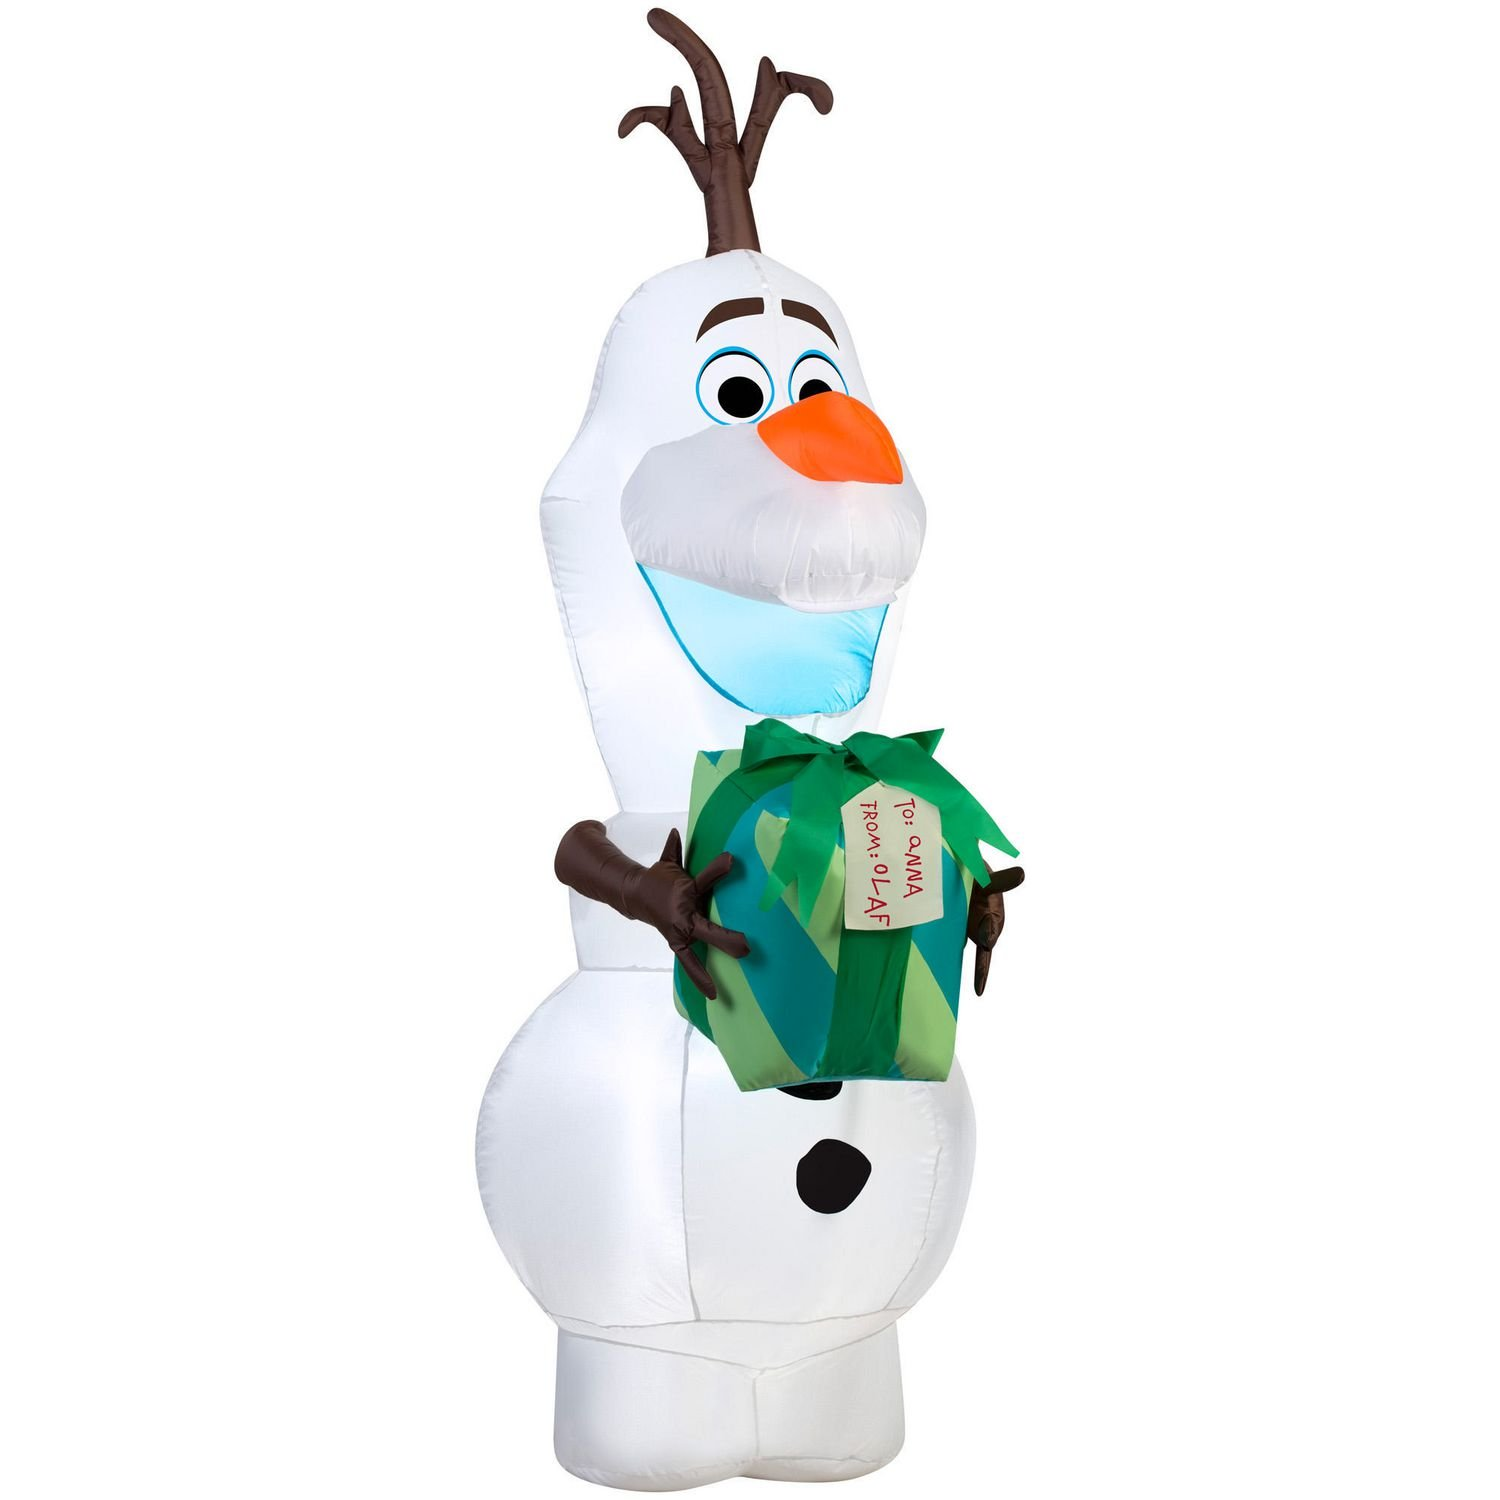 amazoncom airblown 55 foot disney frozen olaf winter self inflatable light up yard decor garden outdoor - Olaf Outdoor Christmas Decoration